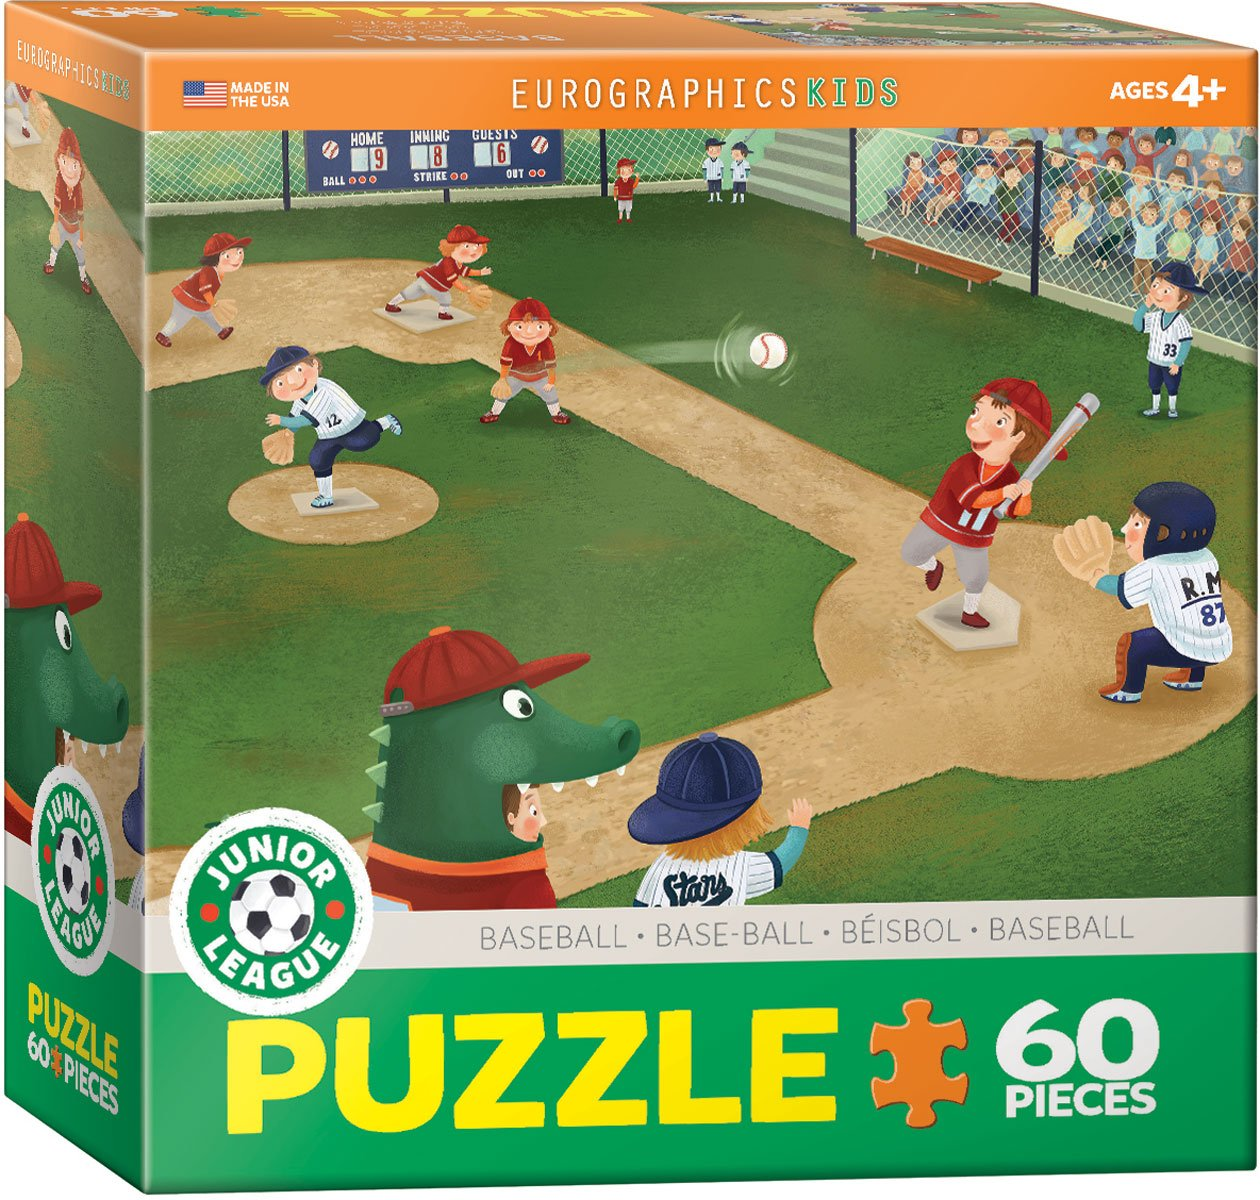 Eurographics Junior League Baseball 60-Piece Puzzle 6060-0484